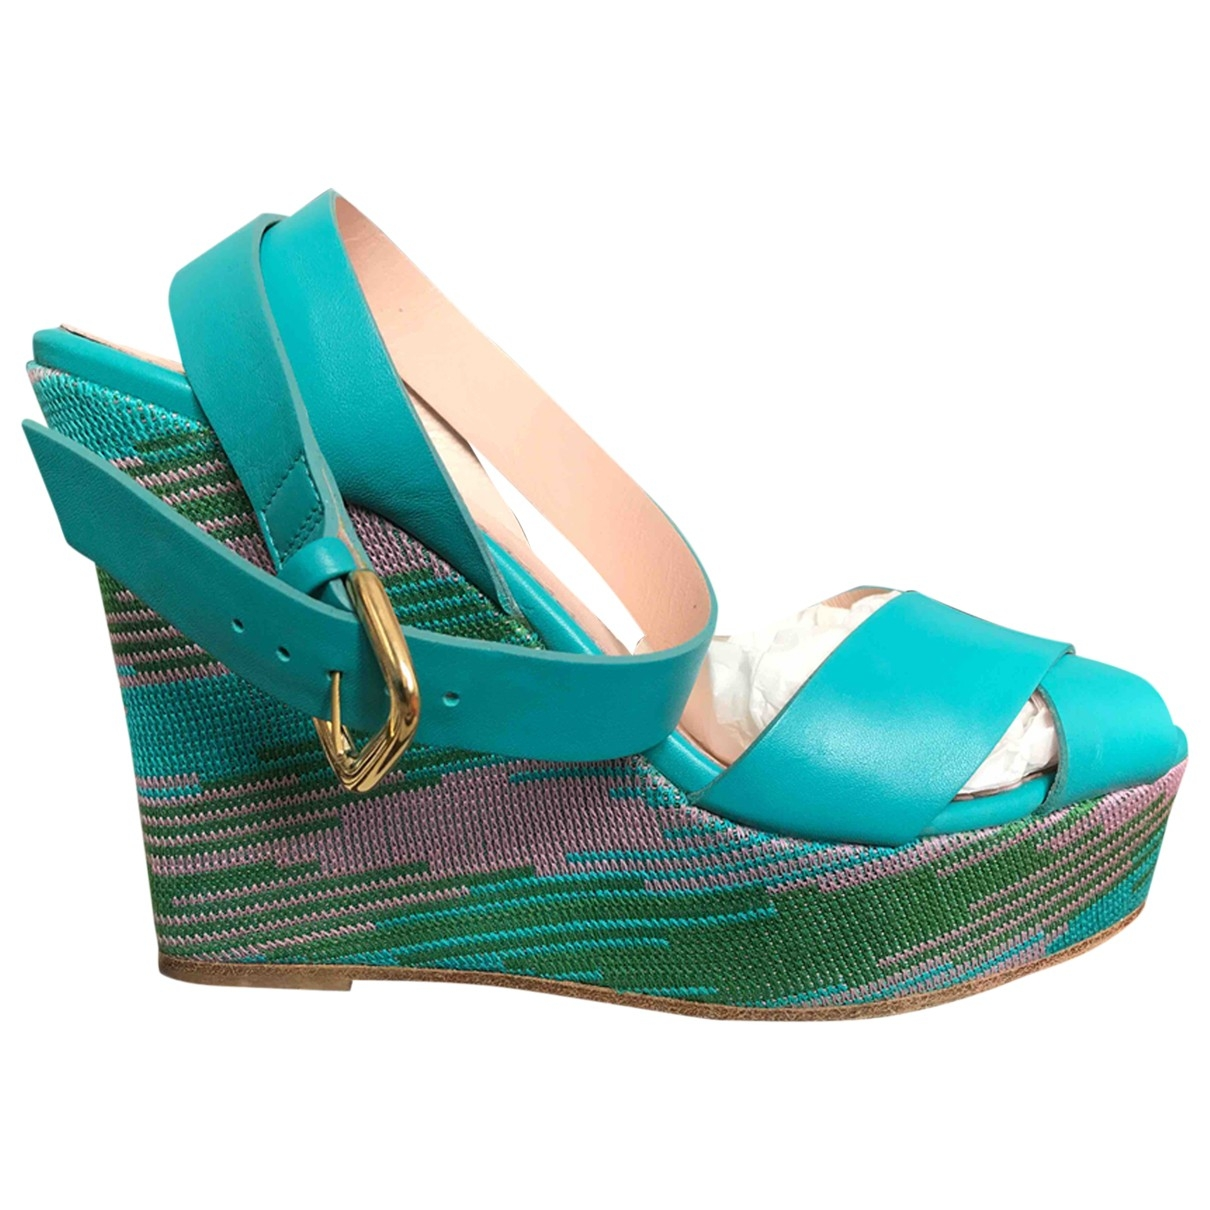 M Missoni \N Turquoise Leather Sandals for Women 40 EU